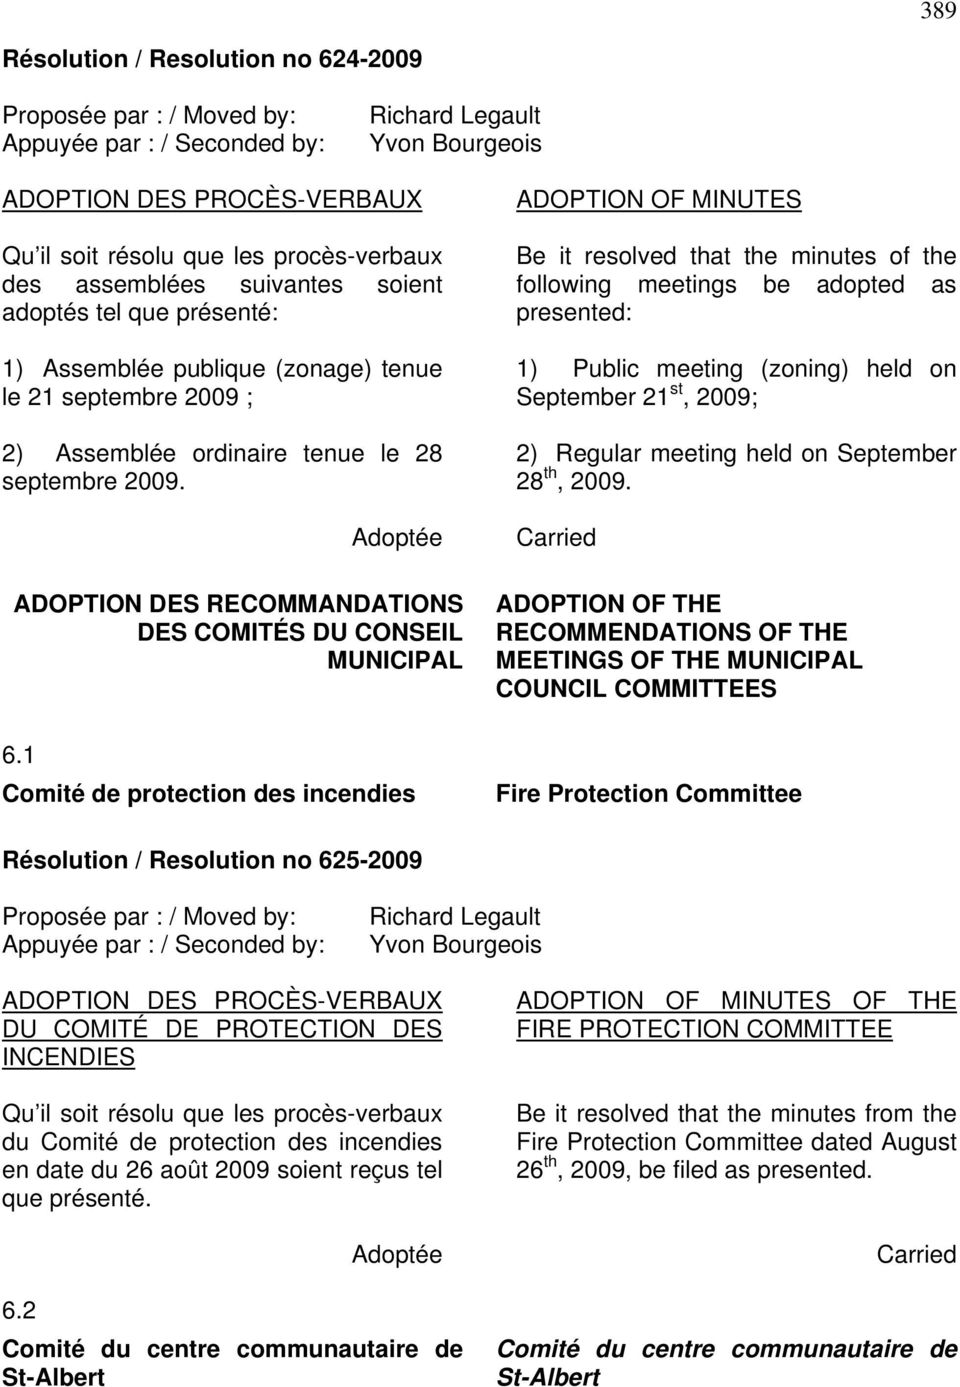 1 Comité de protection des incendies ADOPTION OF MINUTES Be it resolved that the minutes of the following meetings be adopted as presented: 1) Public meeting (zoning) held on September 21 st, 2009;